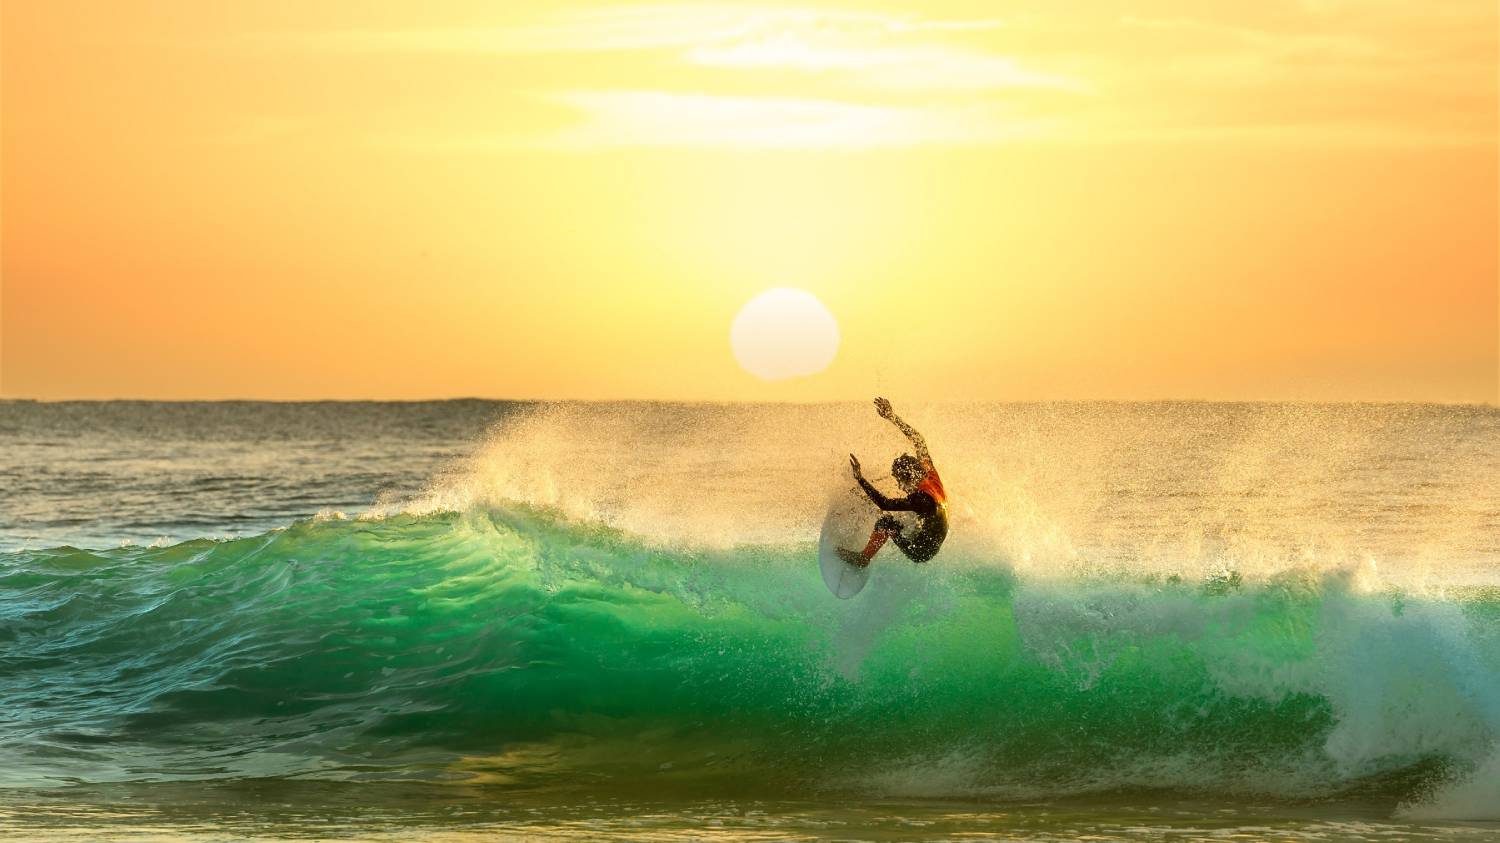 Gold Coast - Things To Do In Brisbane